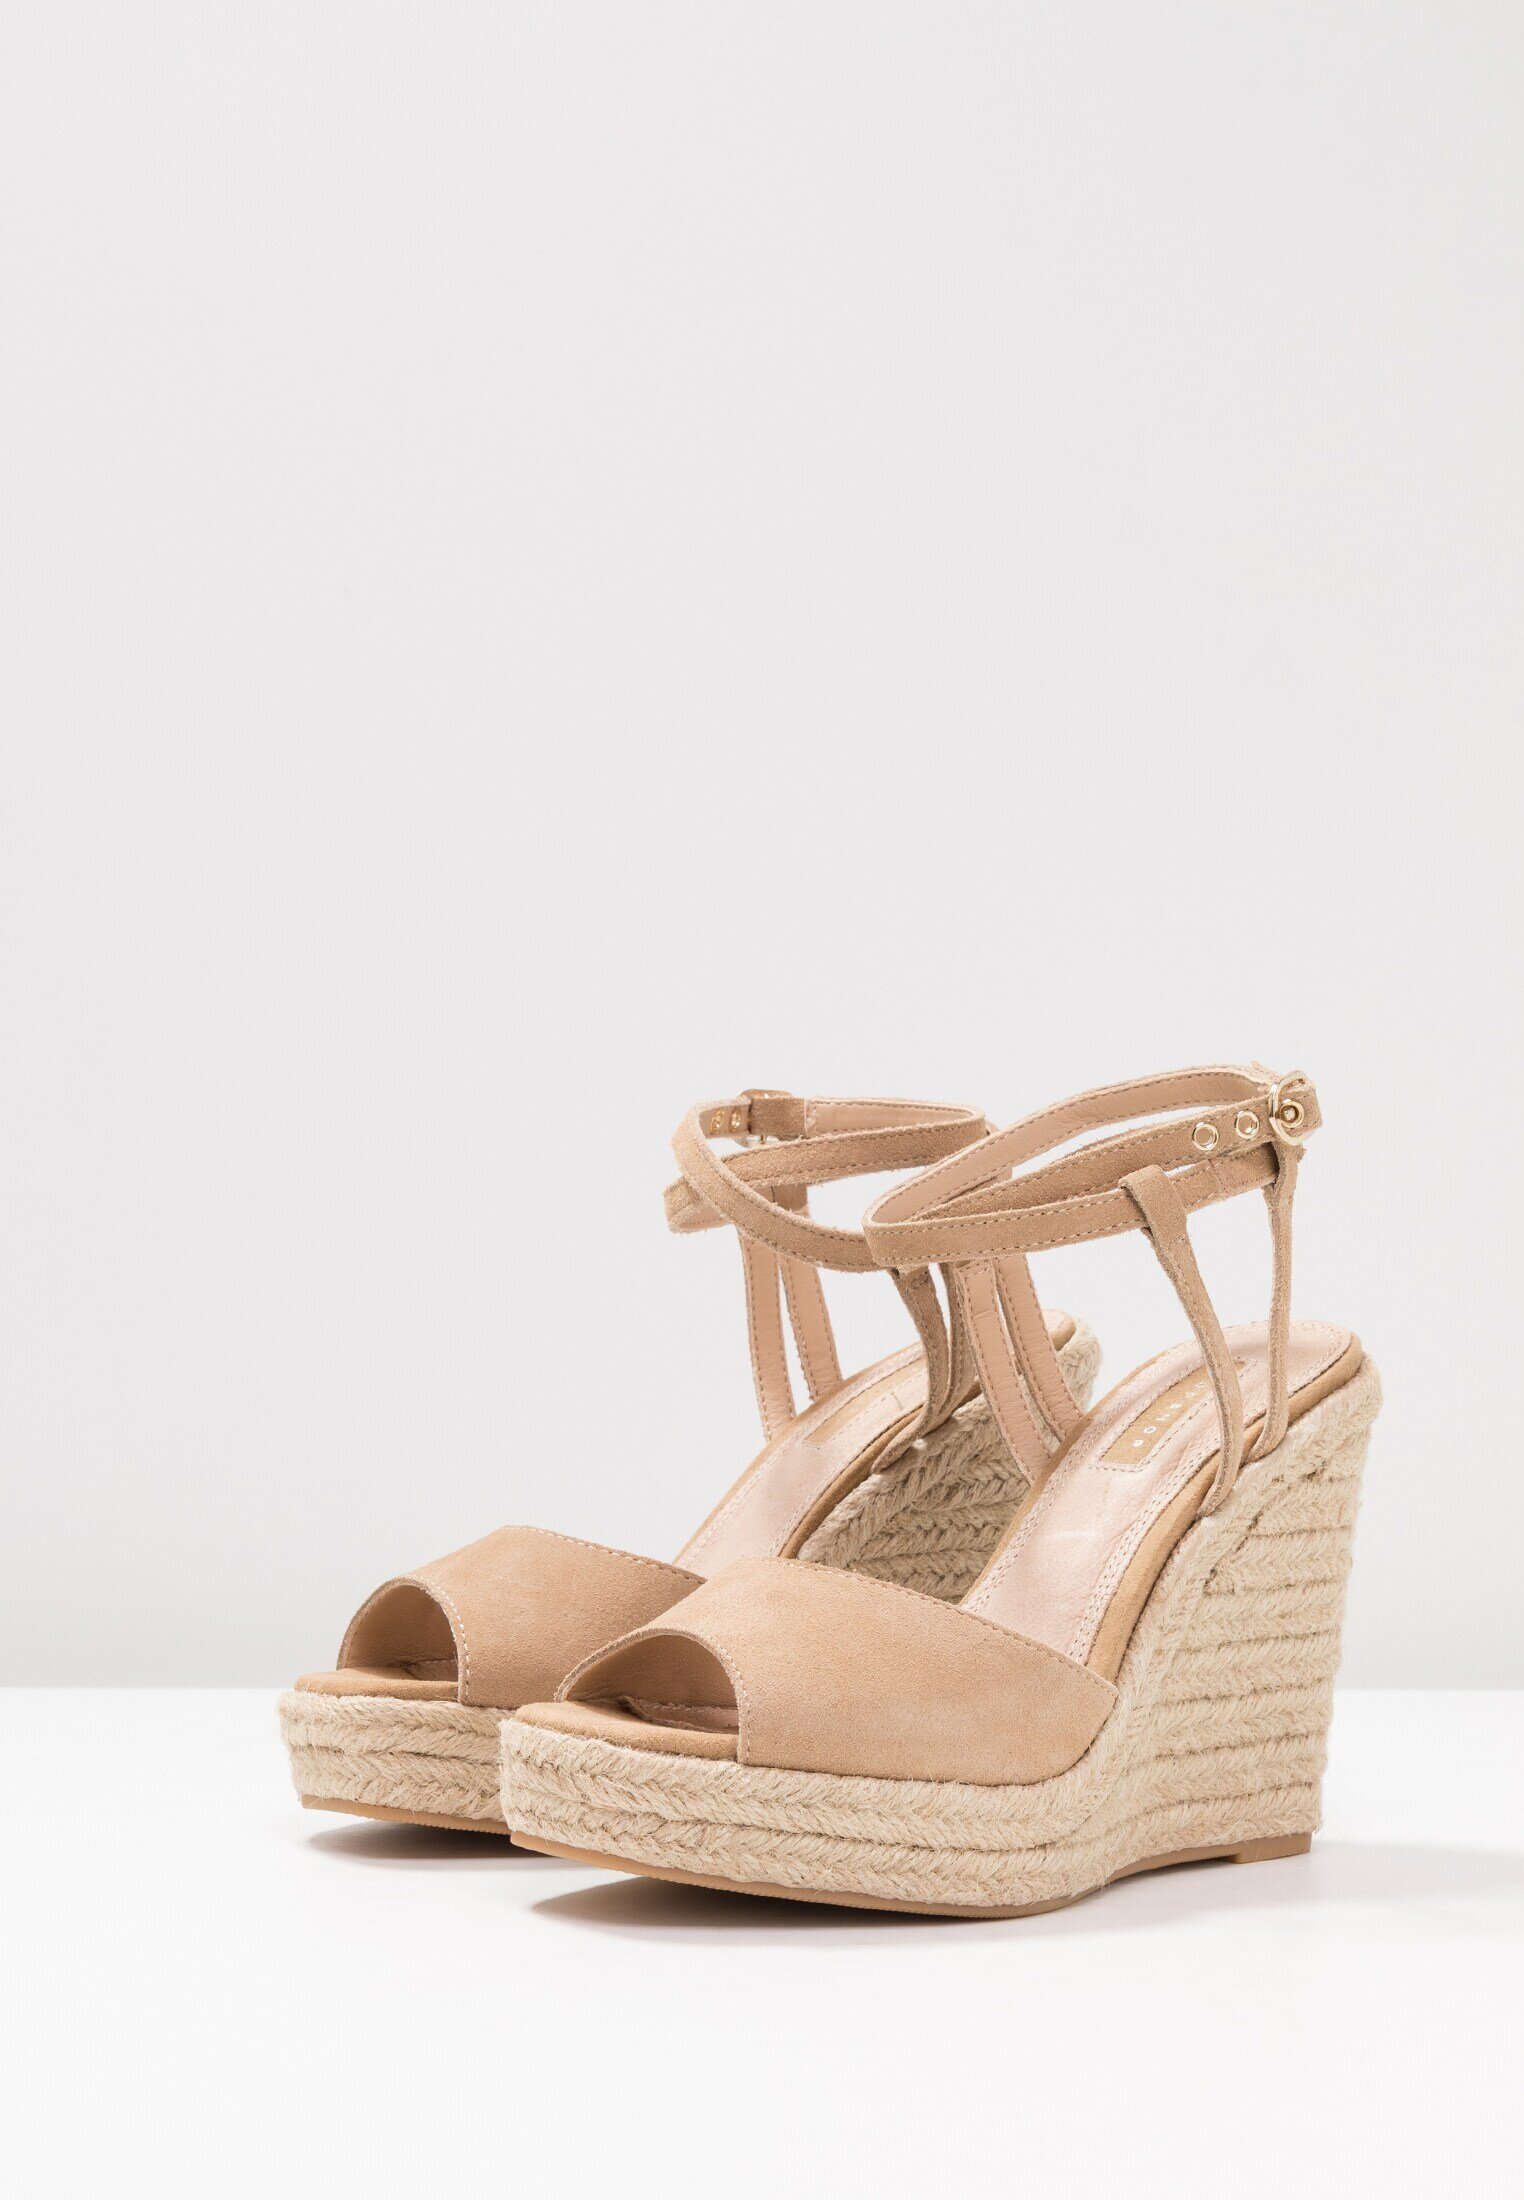 Topshop Whitney Espadrille Wedges in